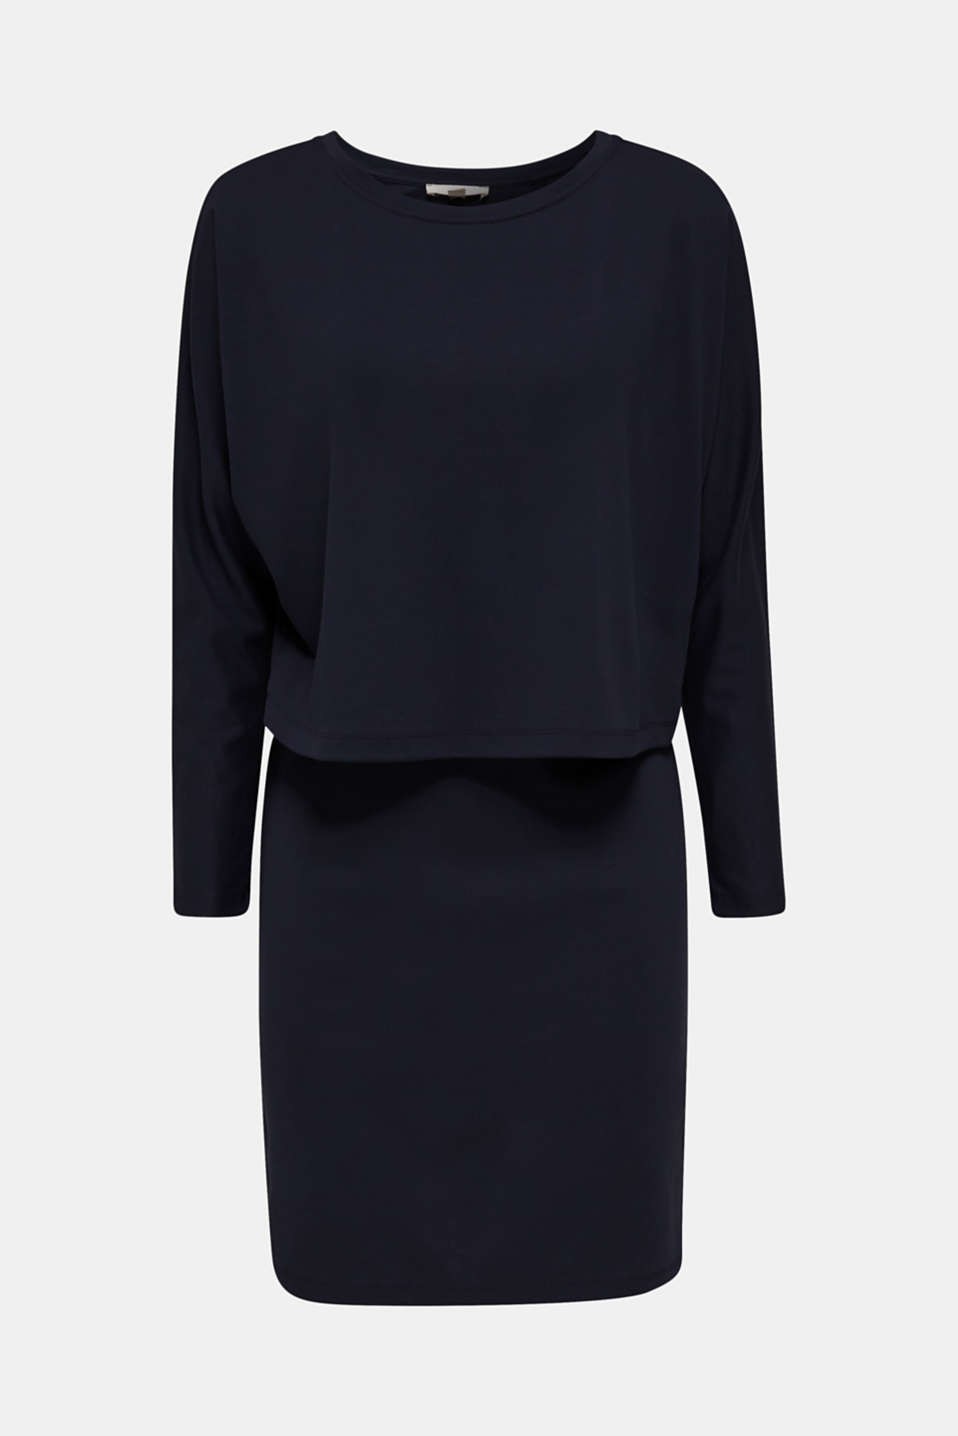 Stretch jersey dress in a layered look, NAVY, detail image number 5